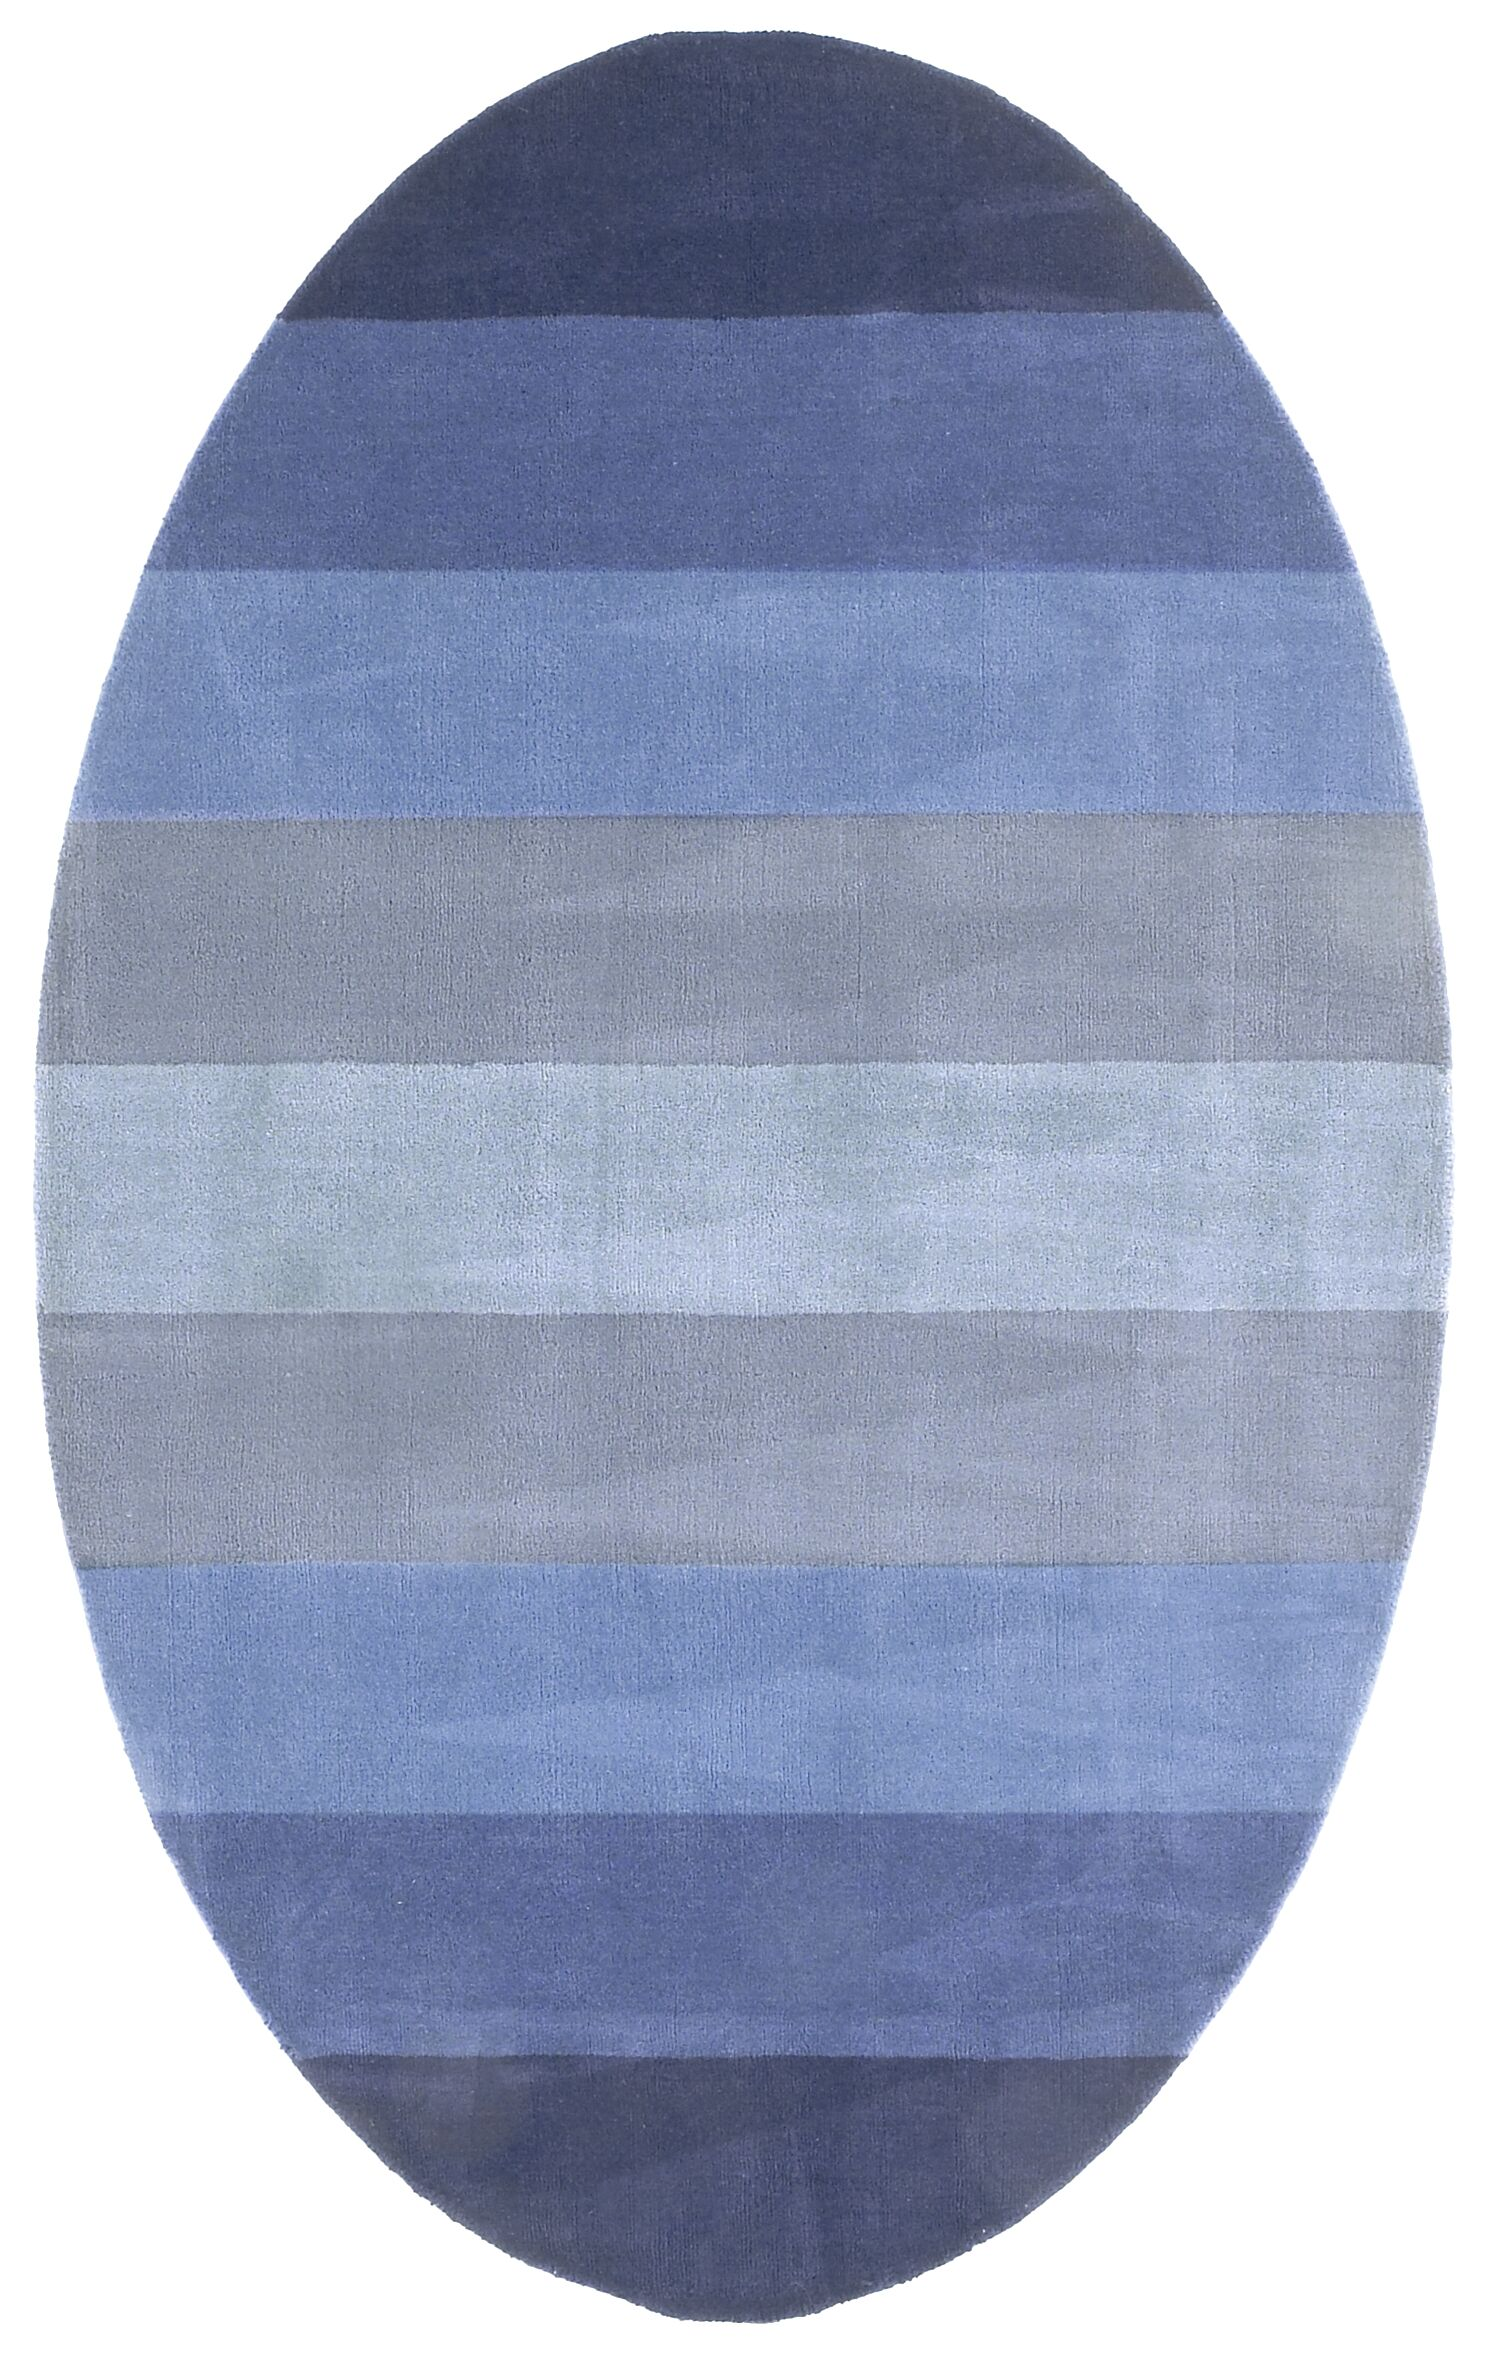 Degarmo Blue Stripes Area Rug Rug Size: Oval 5' x 8'